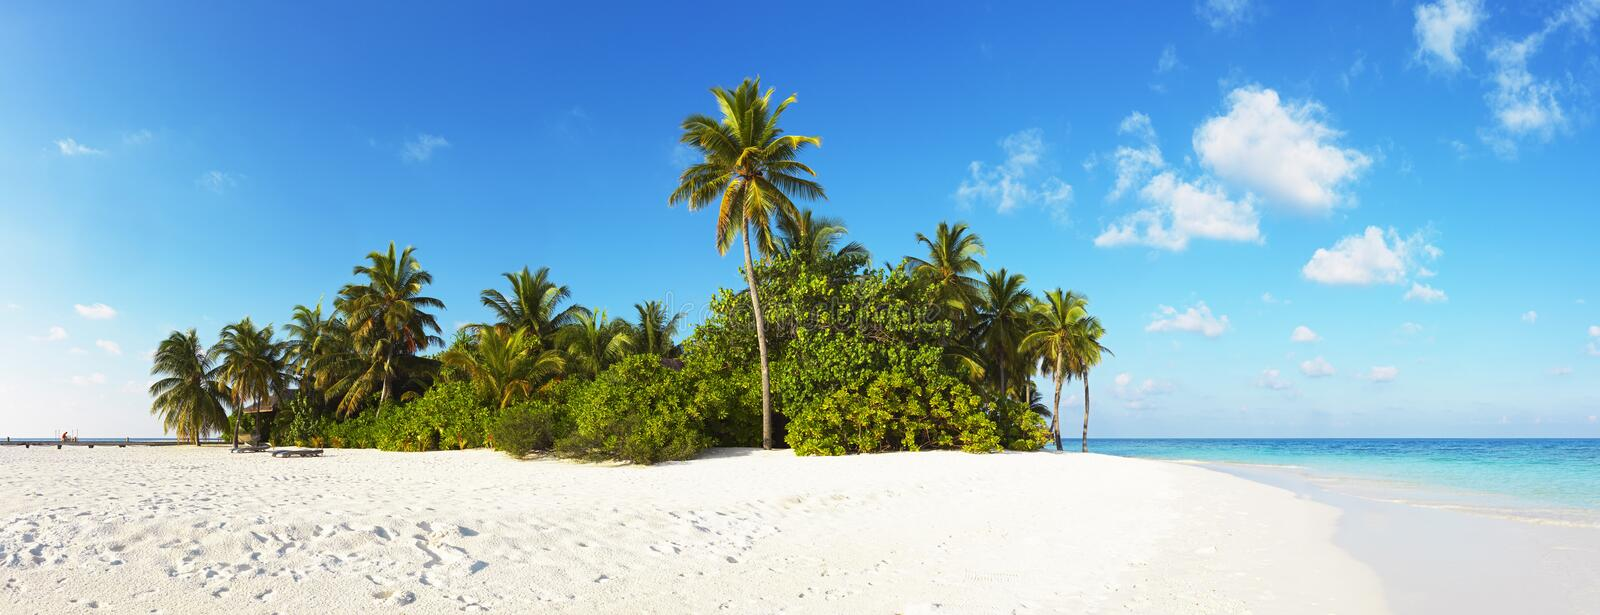 Download Tropical paradise stock image. Image of cloud, tourism - 5268445